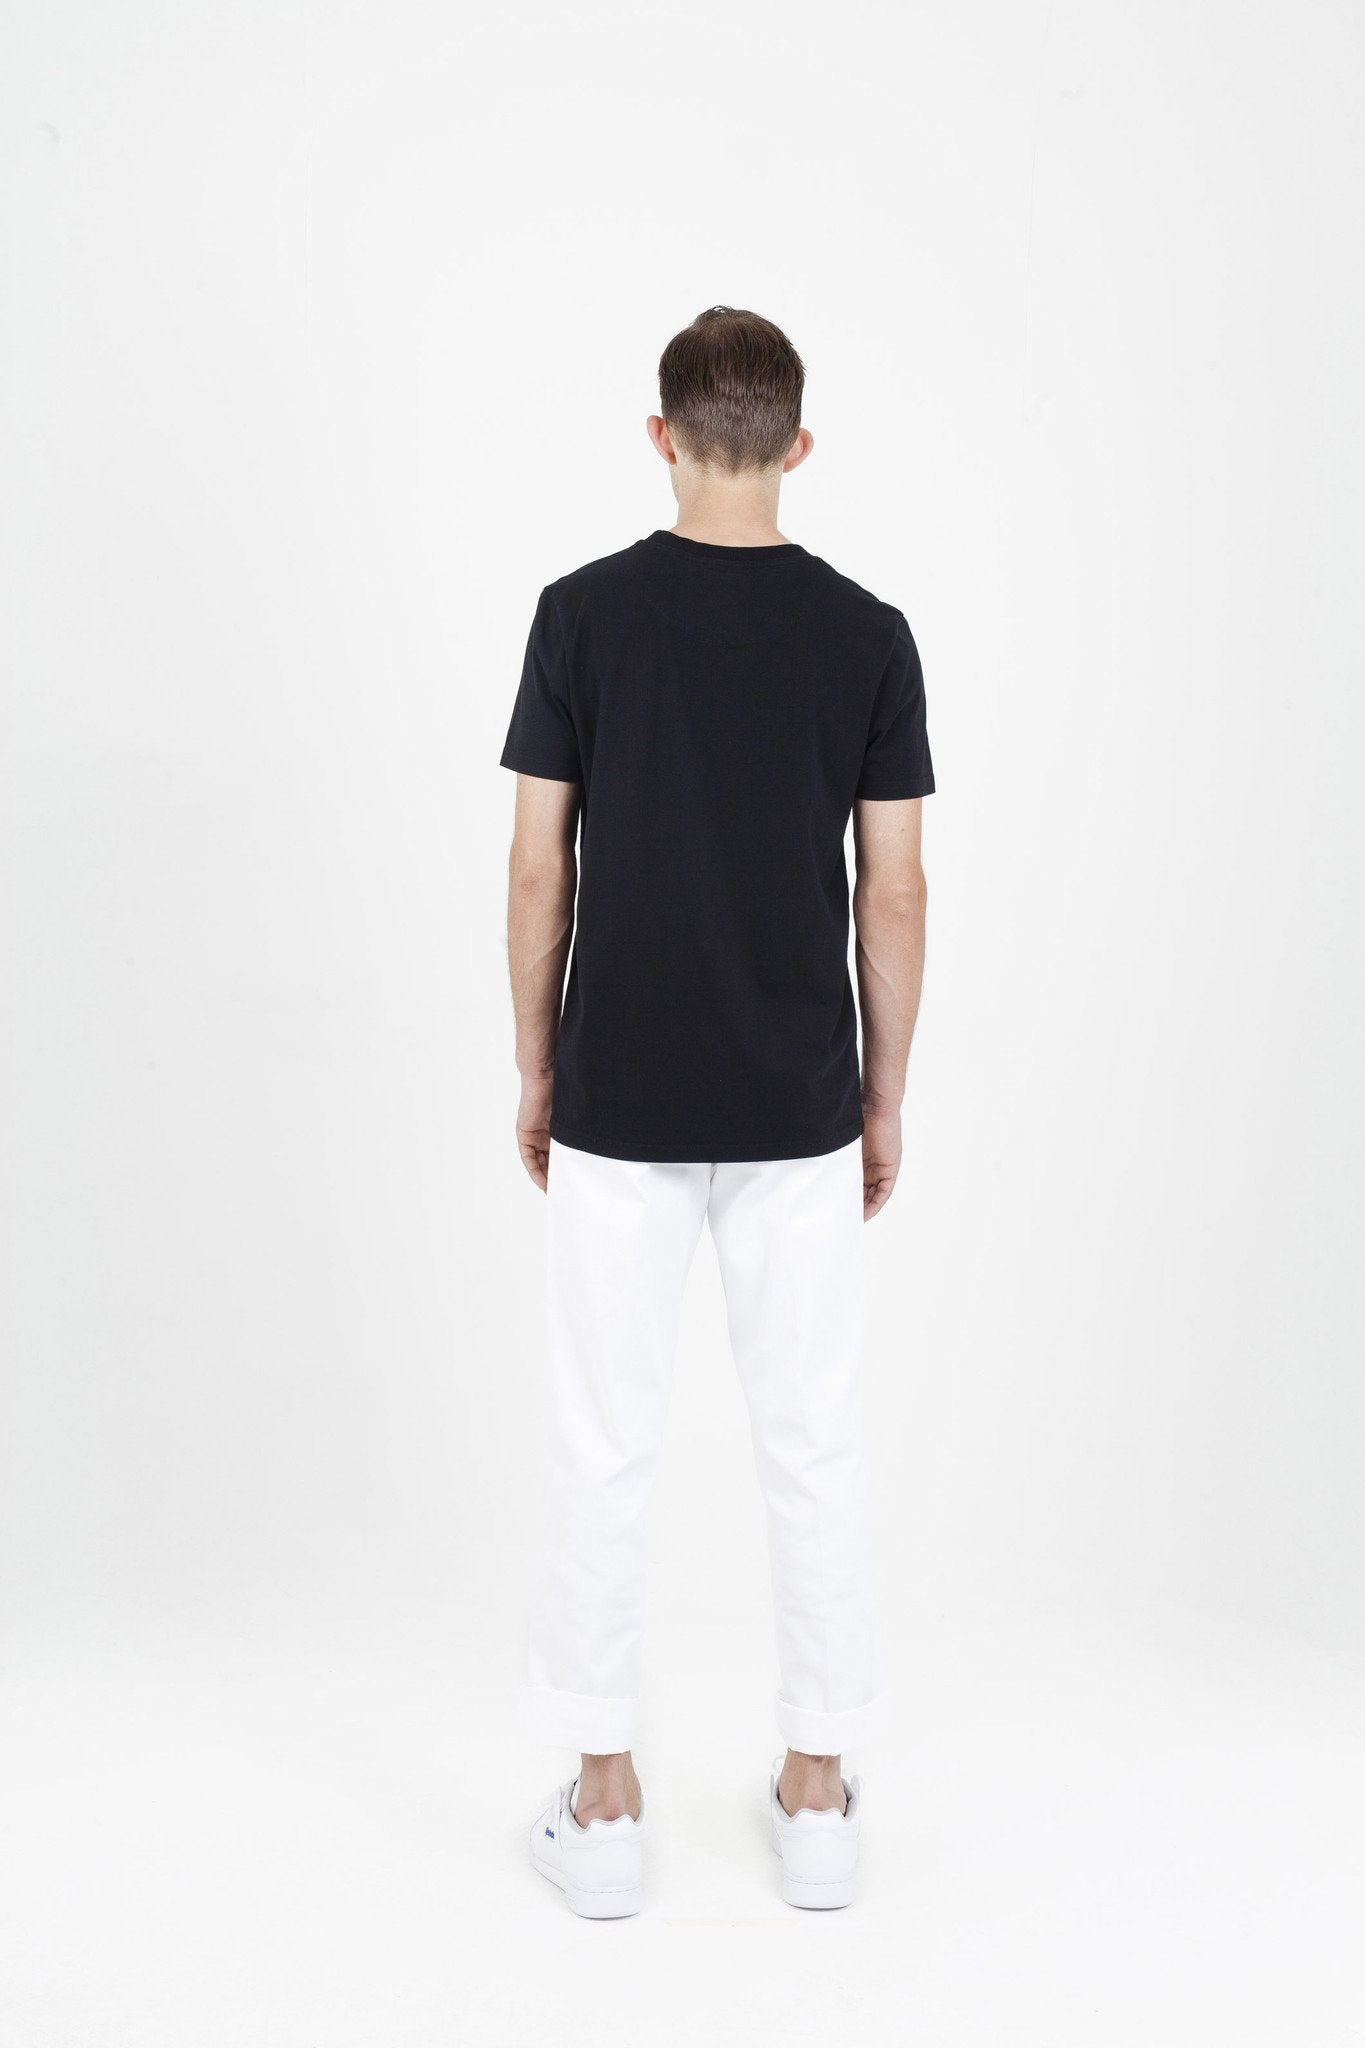 Low Profile Black Printed Tee - LA Inspired Crew Neck T-Shirt